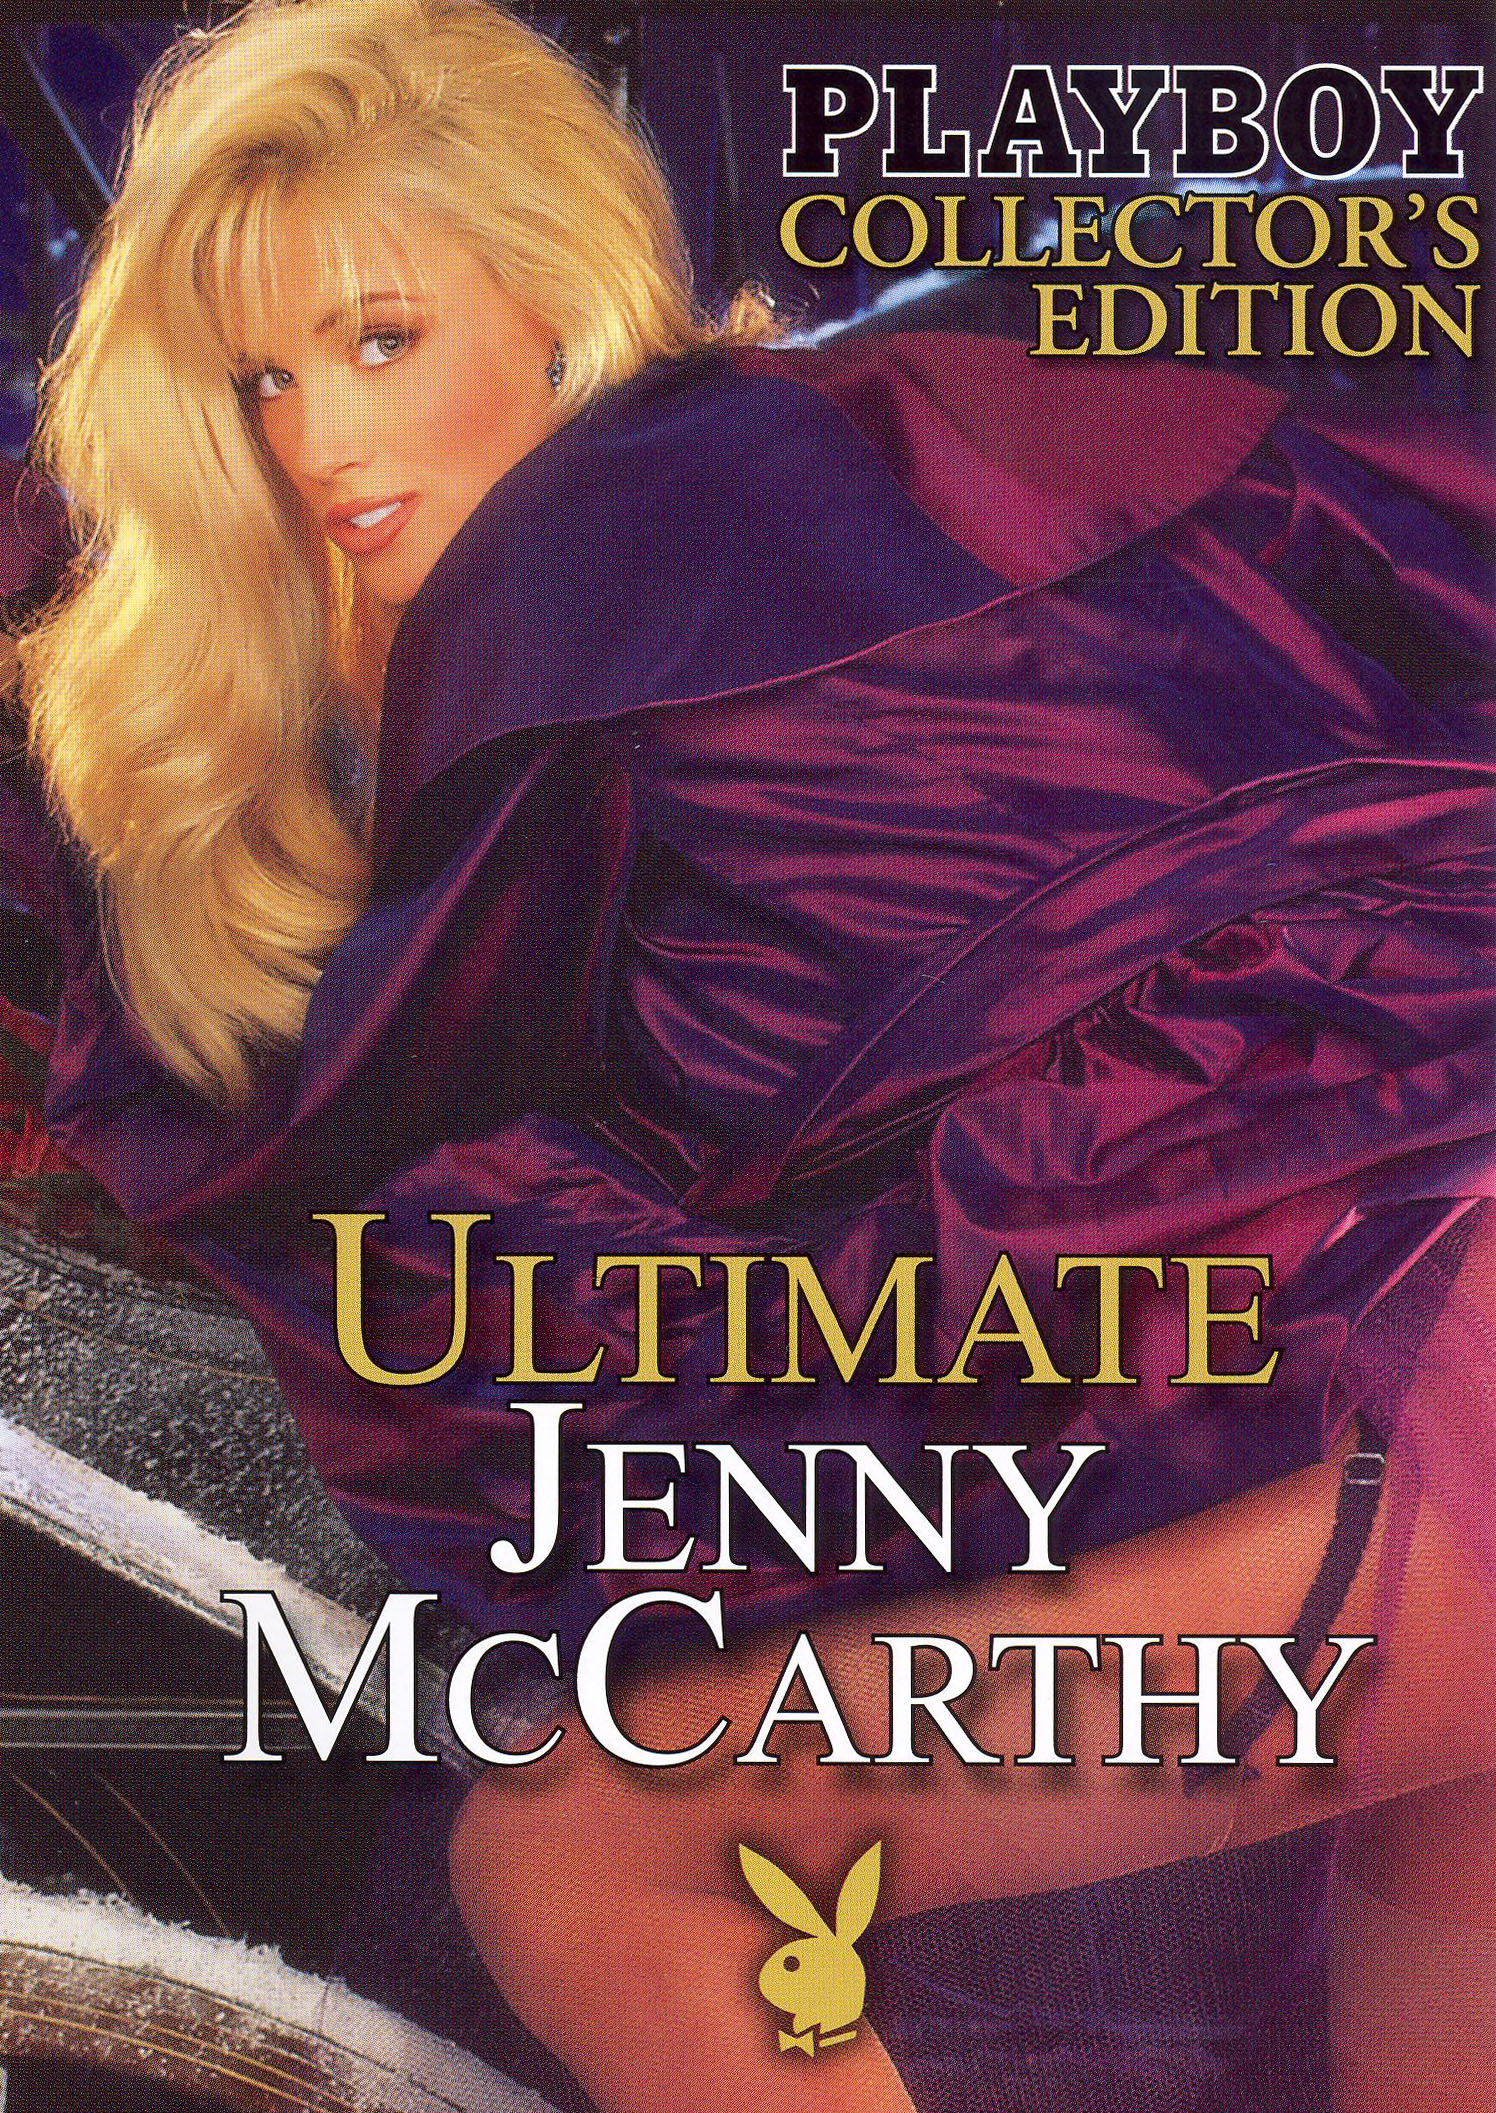 Playboy: The Ultimate Jenny McCarthy